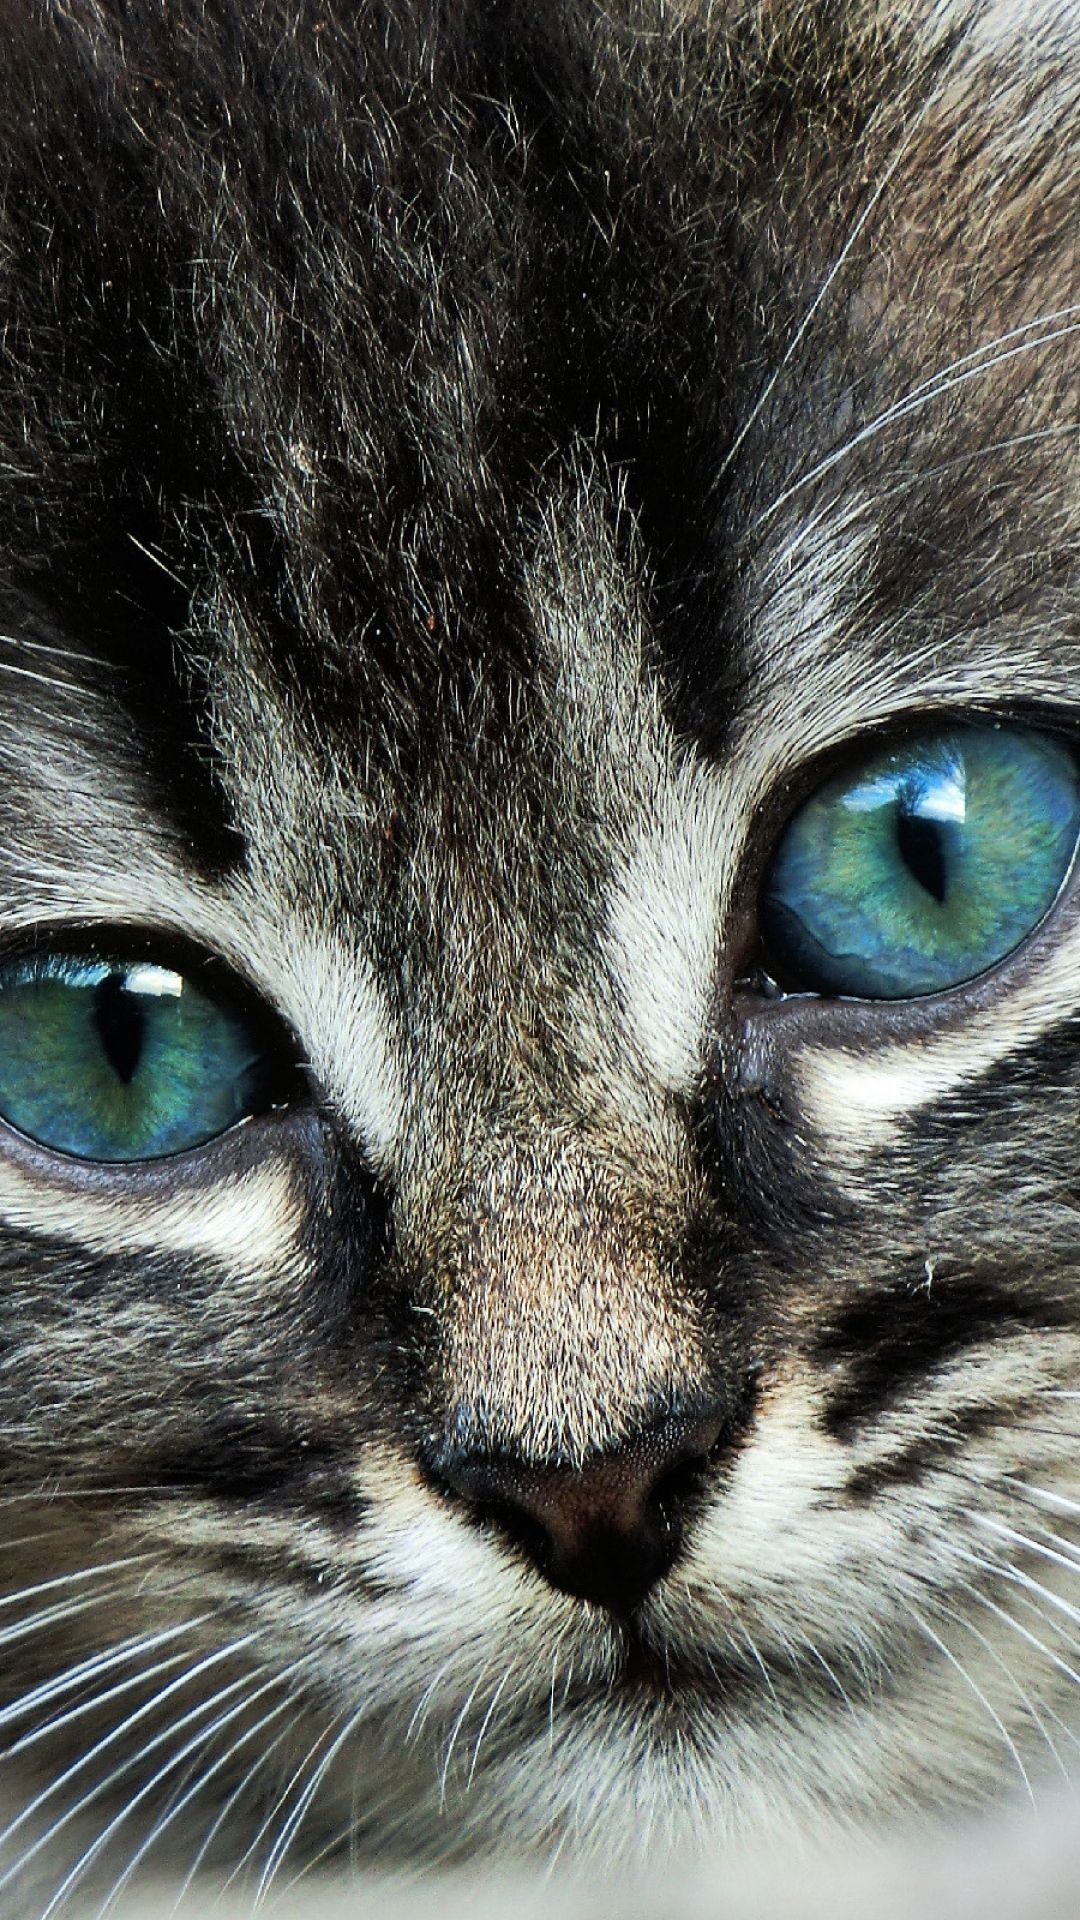 download wallpaper 1080x1920 cat, face, eyes, color sony xperia z1